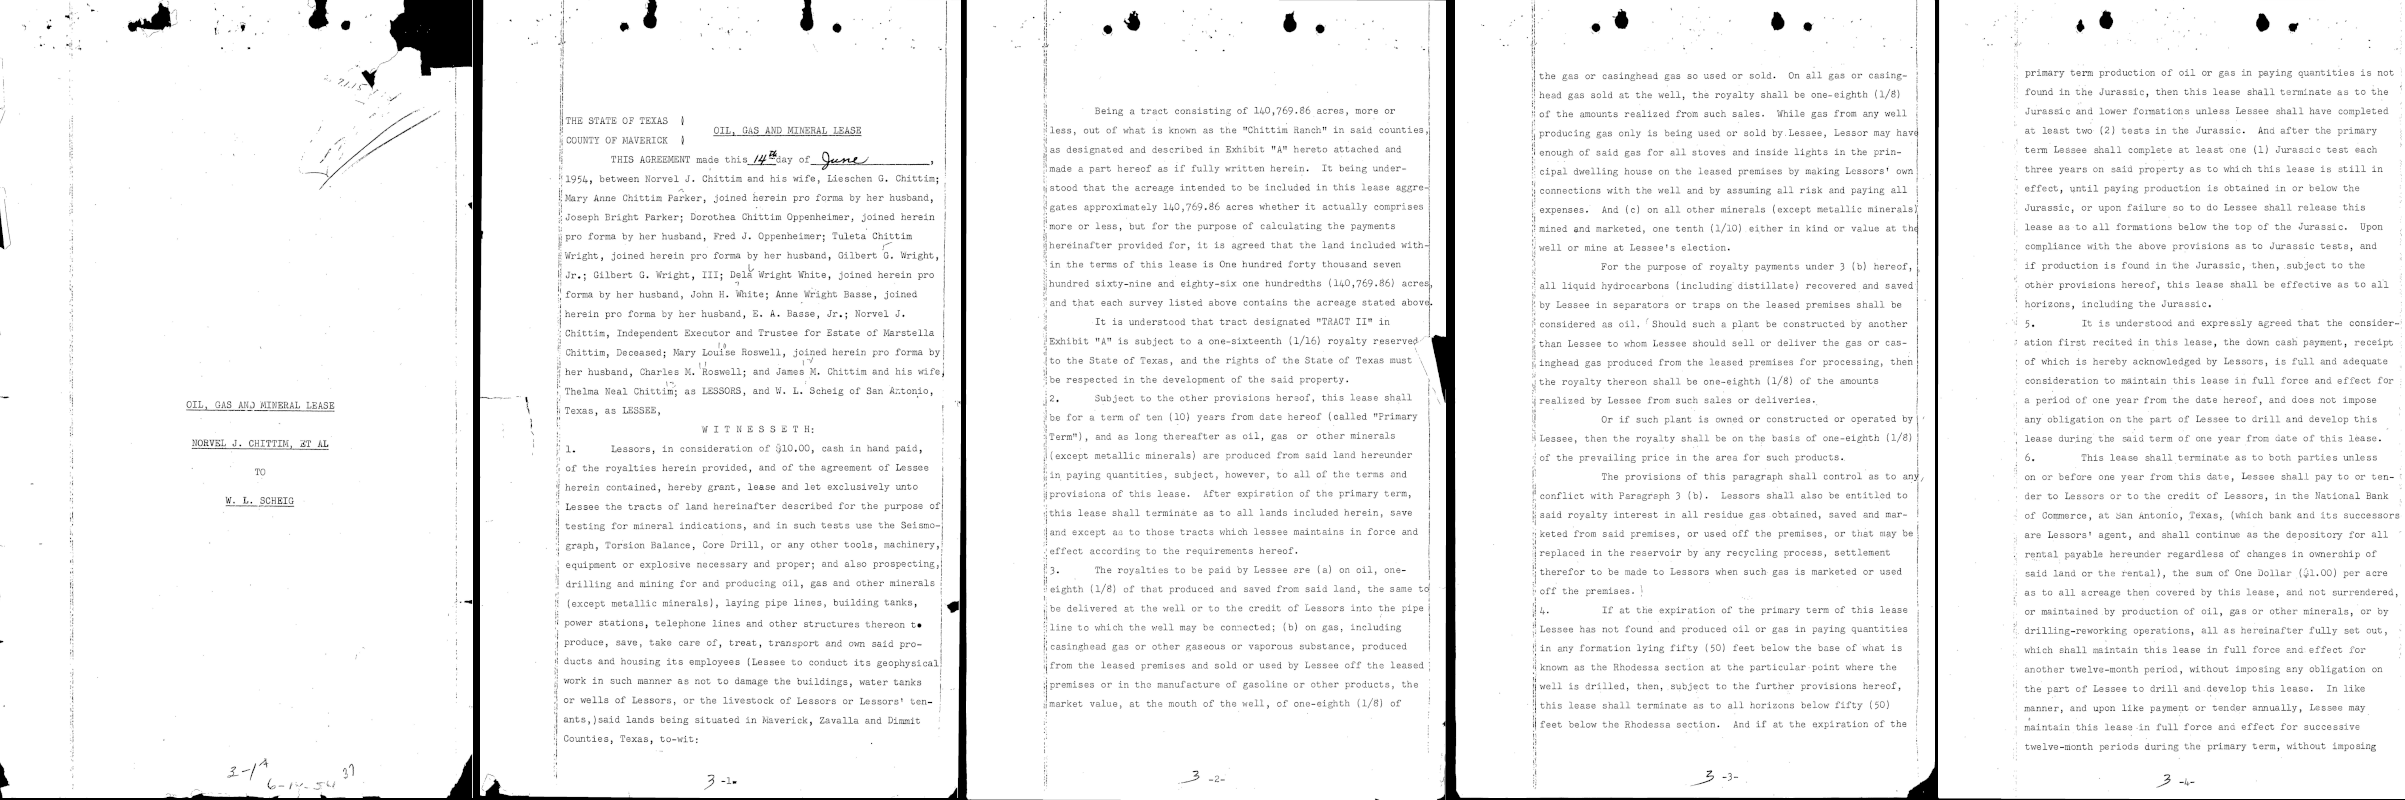 first five pages of a pdf file